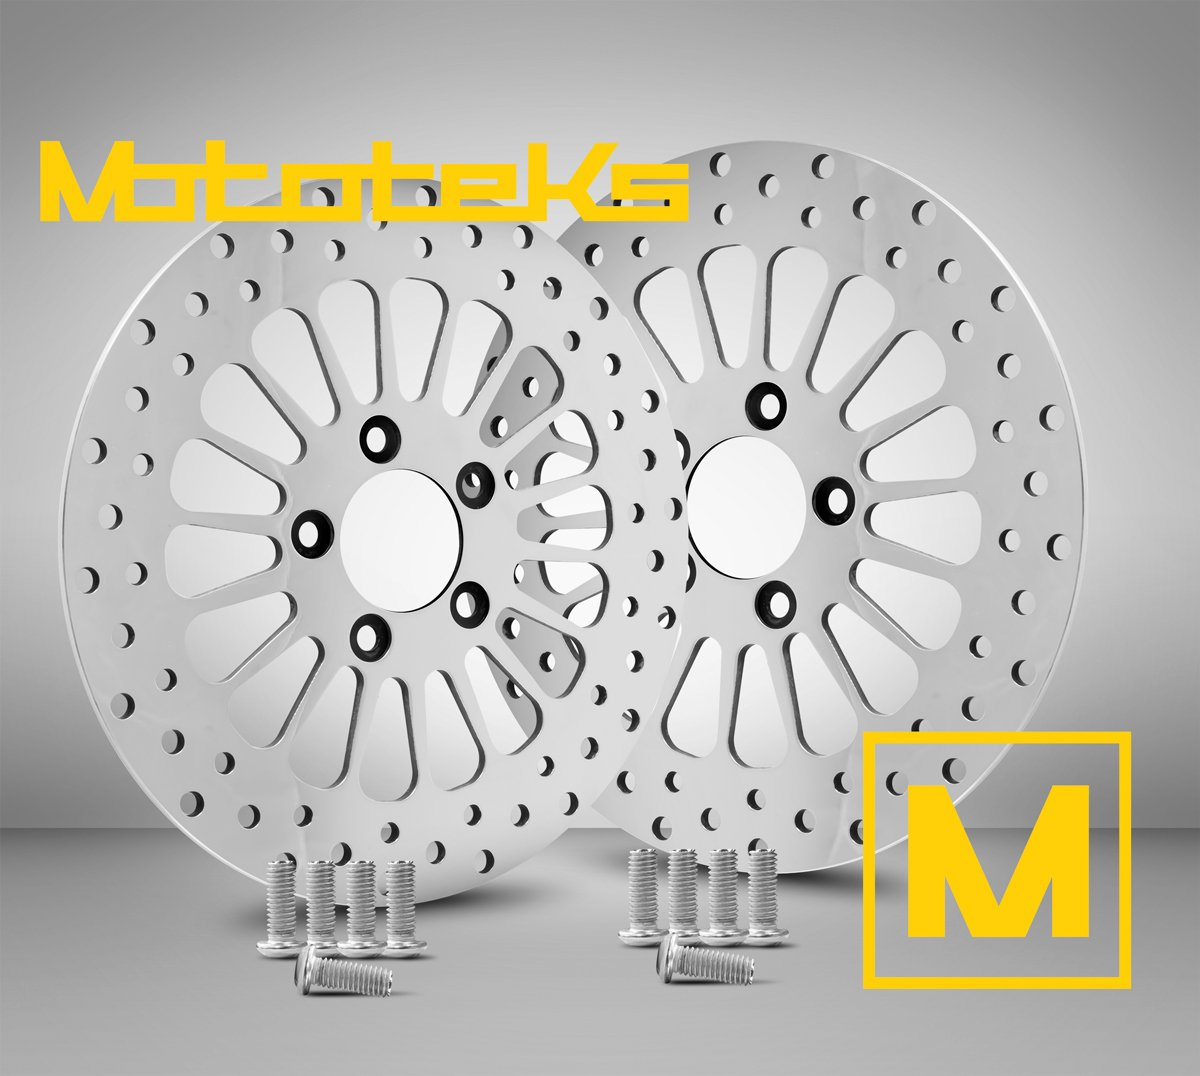 11.8 Front Brake Stainless Steel Rotors w/ Hardware for Harley Davidson Touring Bagger Models fits 2008 Above by Mototeks, Inc.